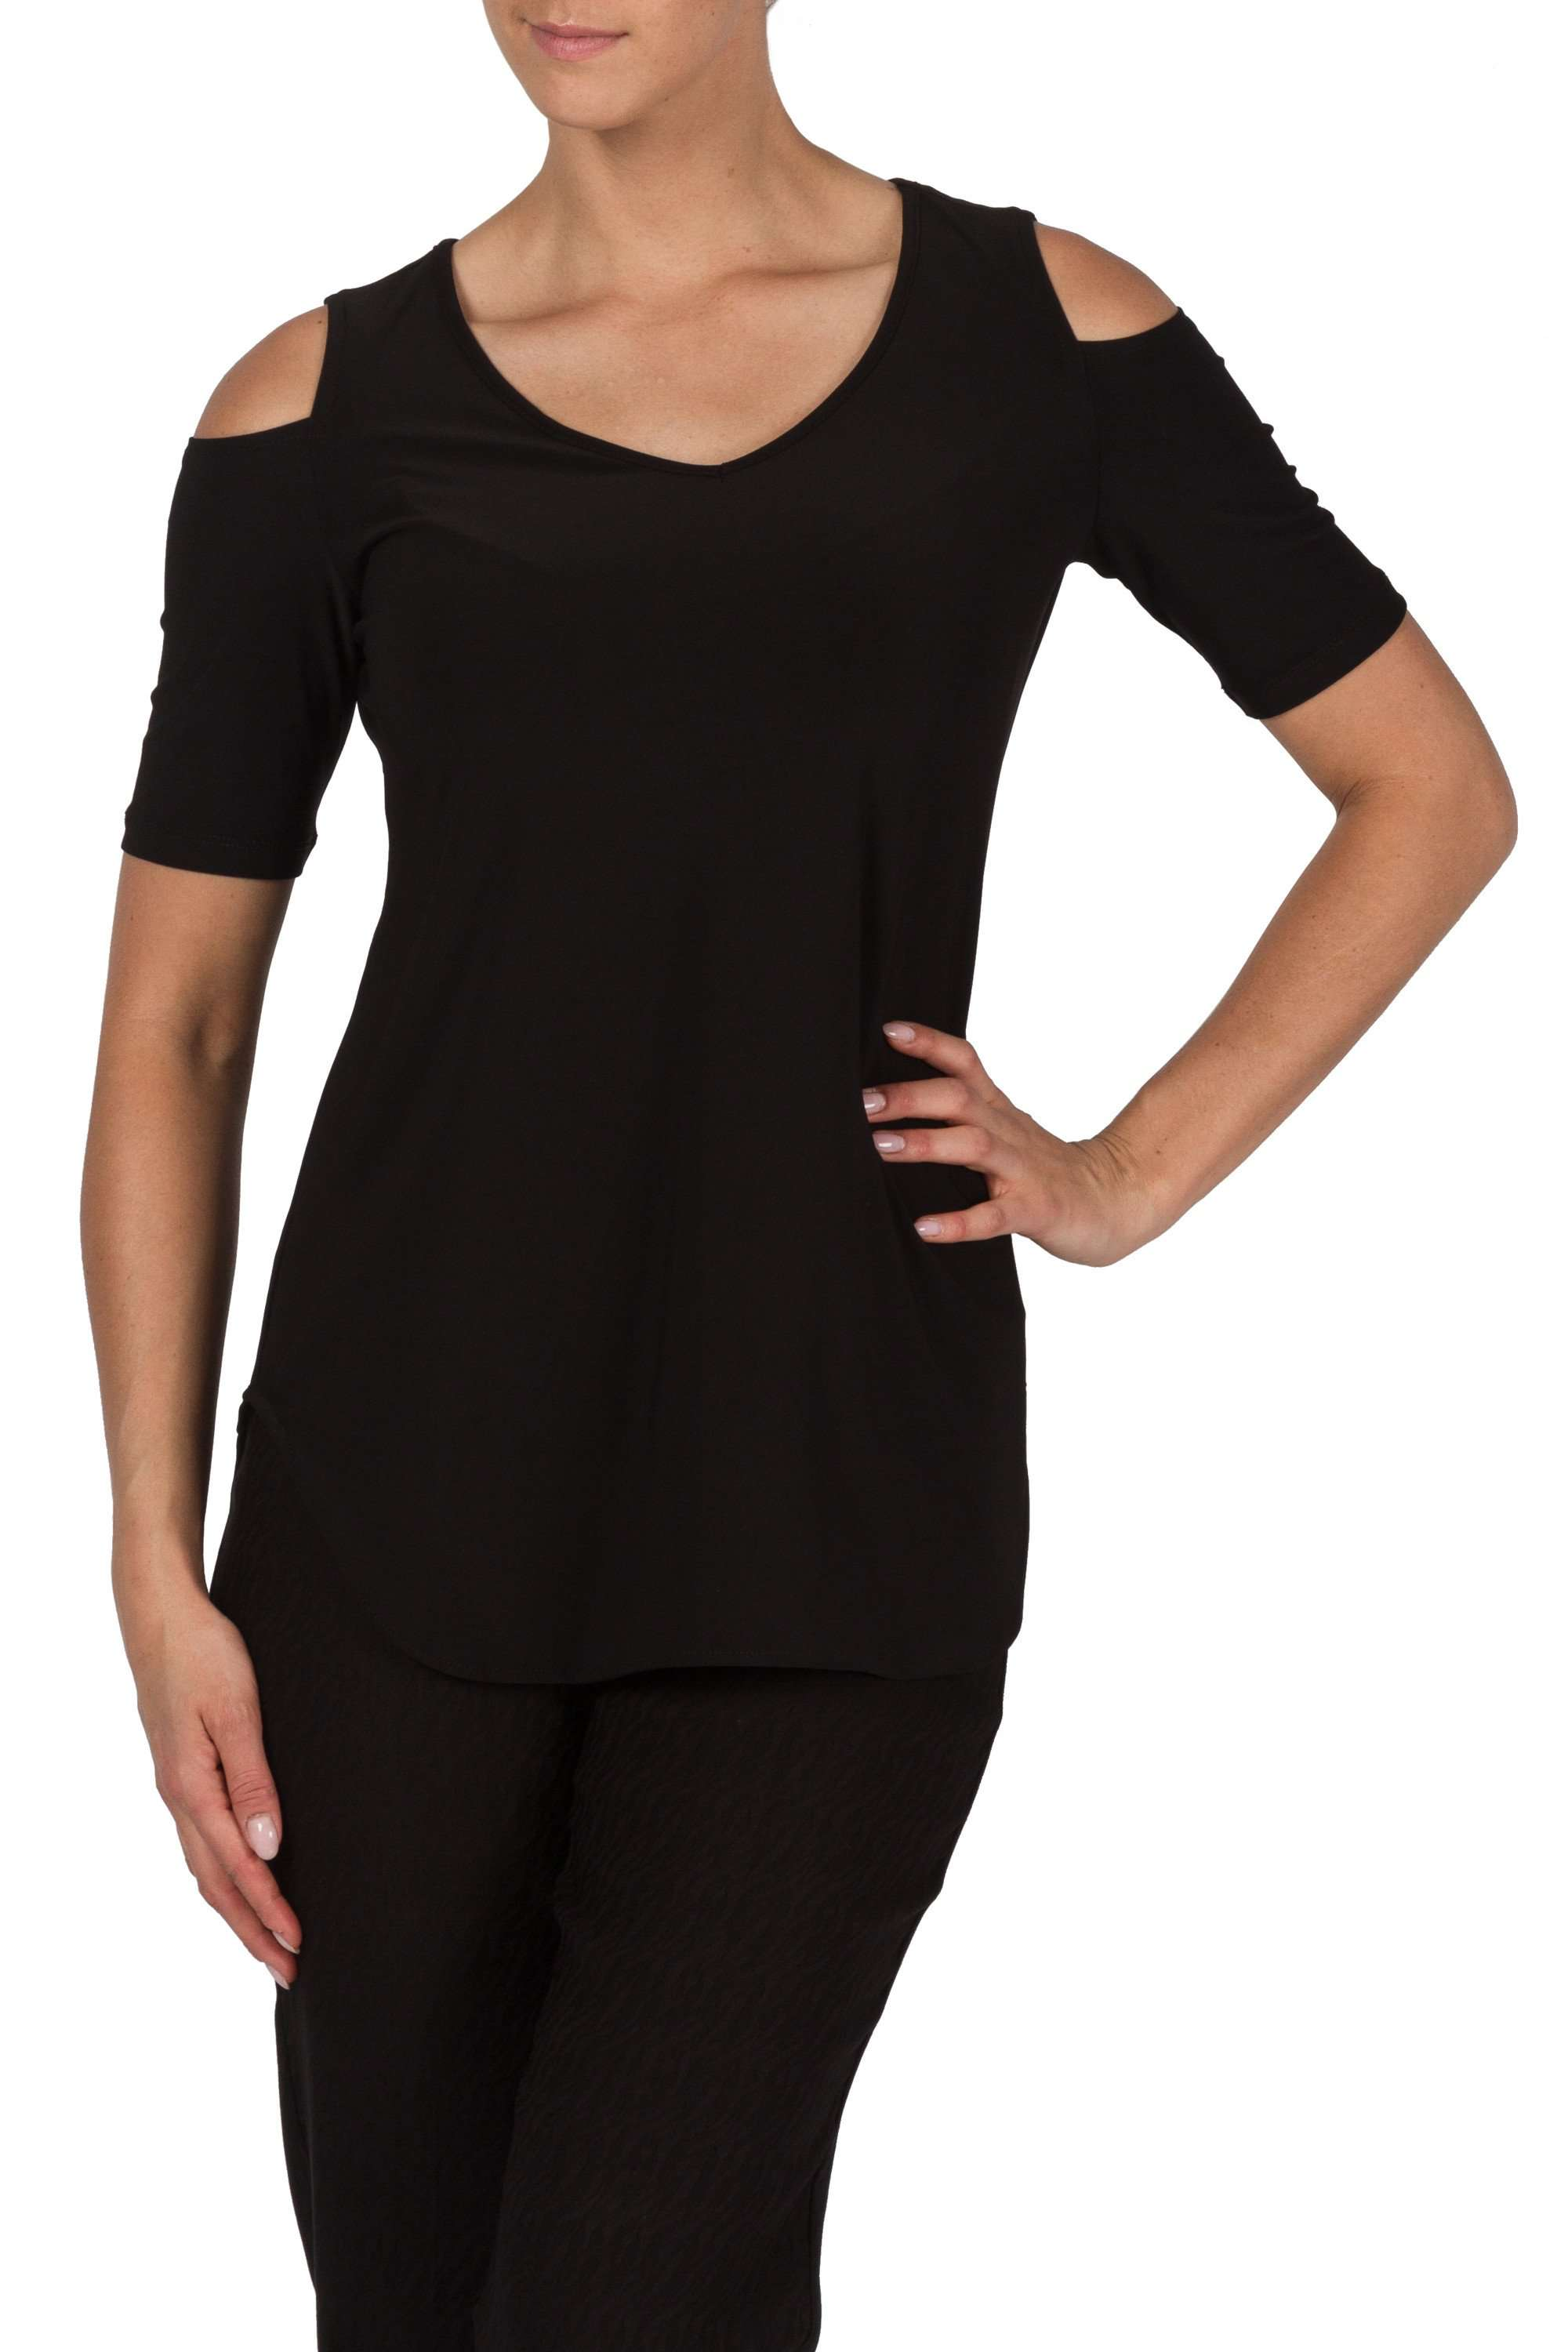 Women's Cold Shoulder Black top On Sale - Made in Canada - Yvonne Marie - Yvonne Marie